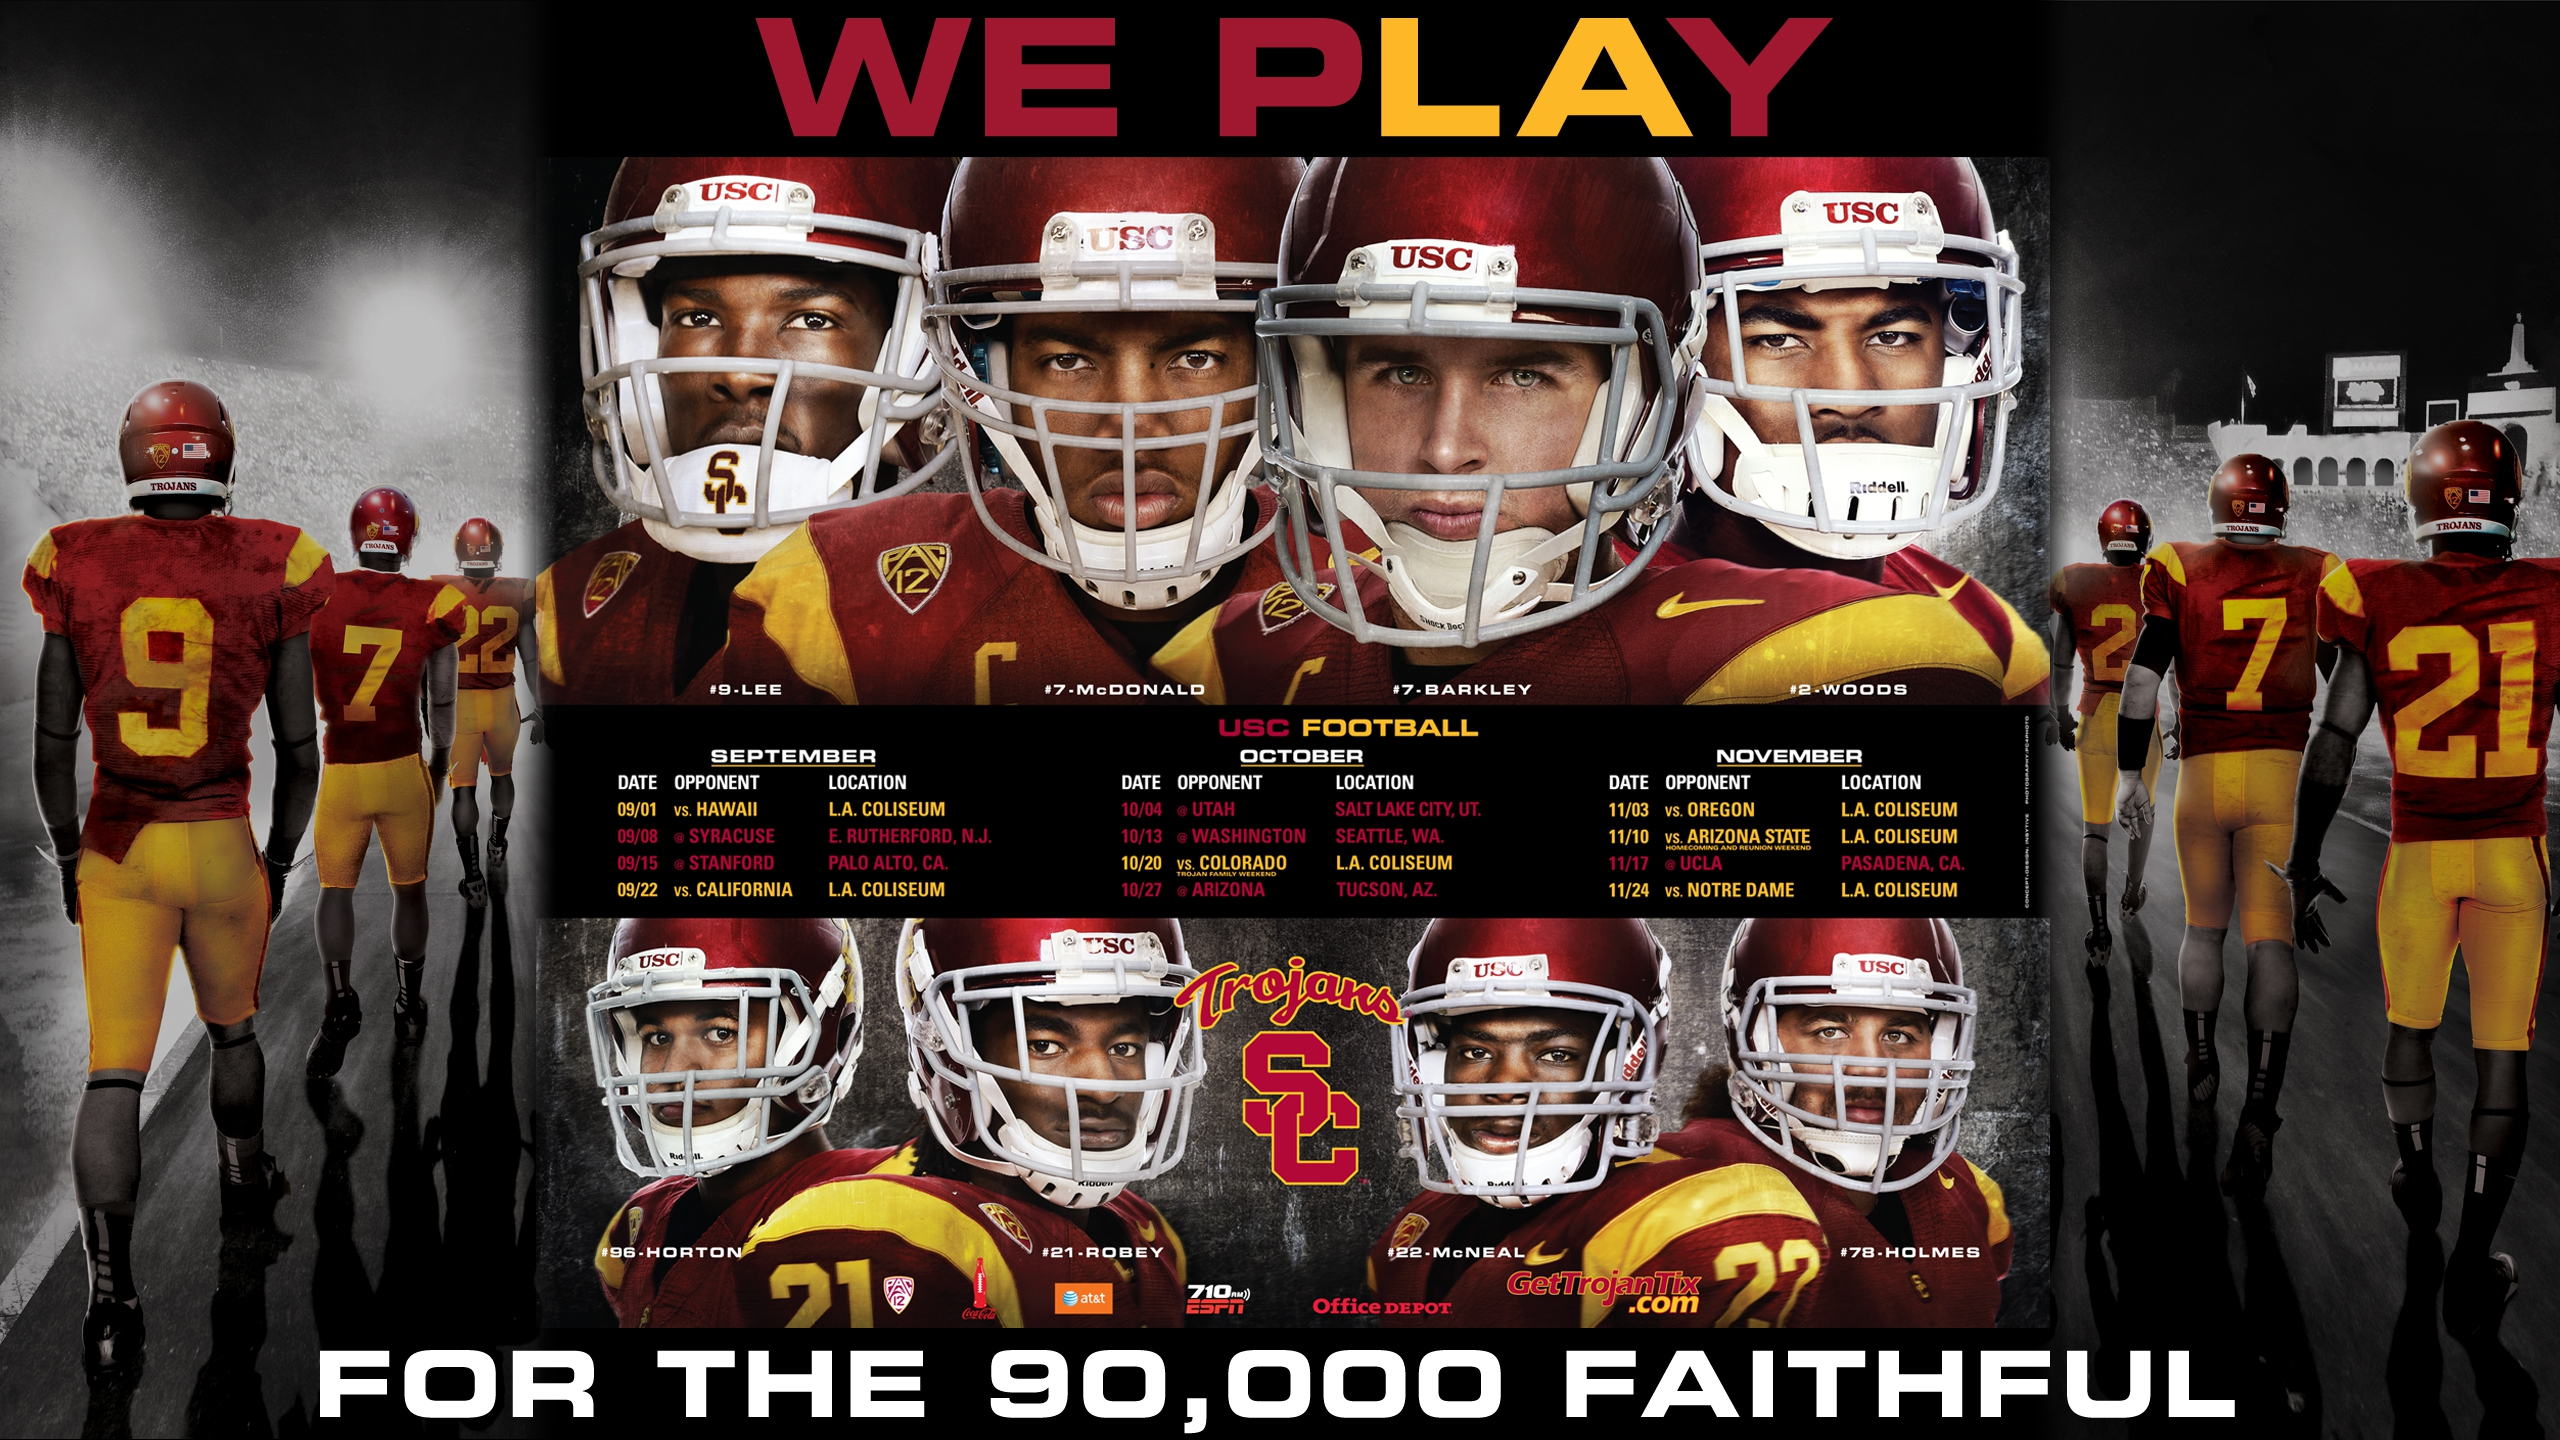 Download Usc Football Wallpapers 2560x1440